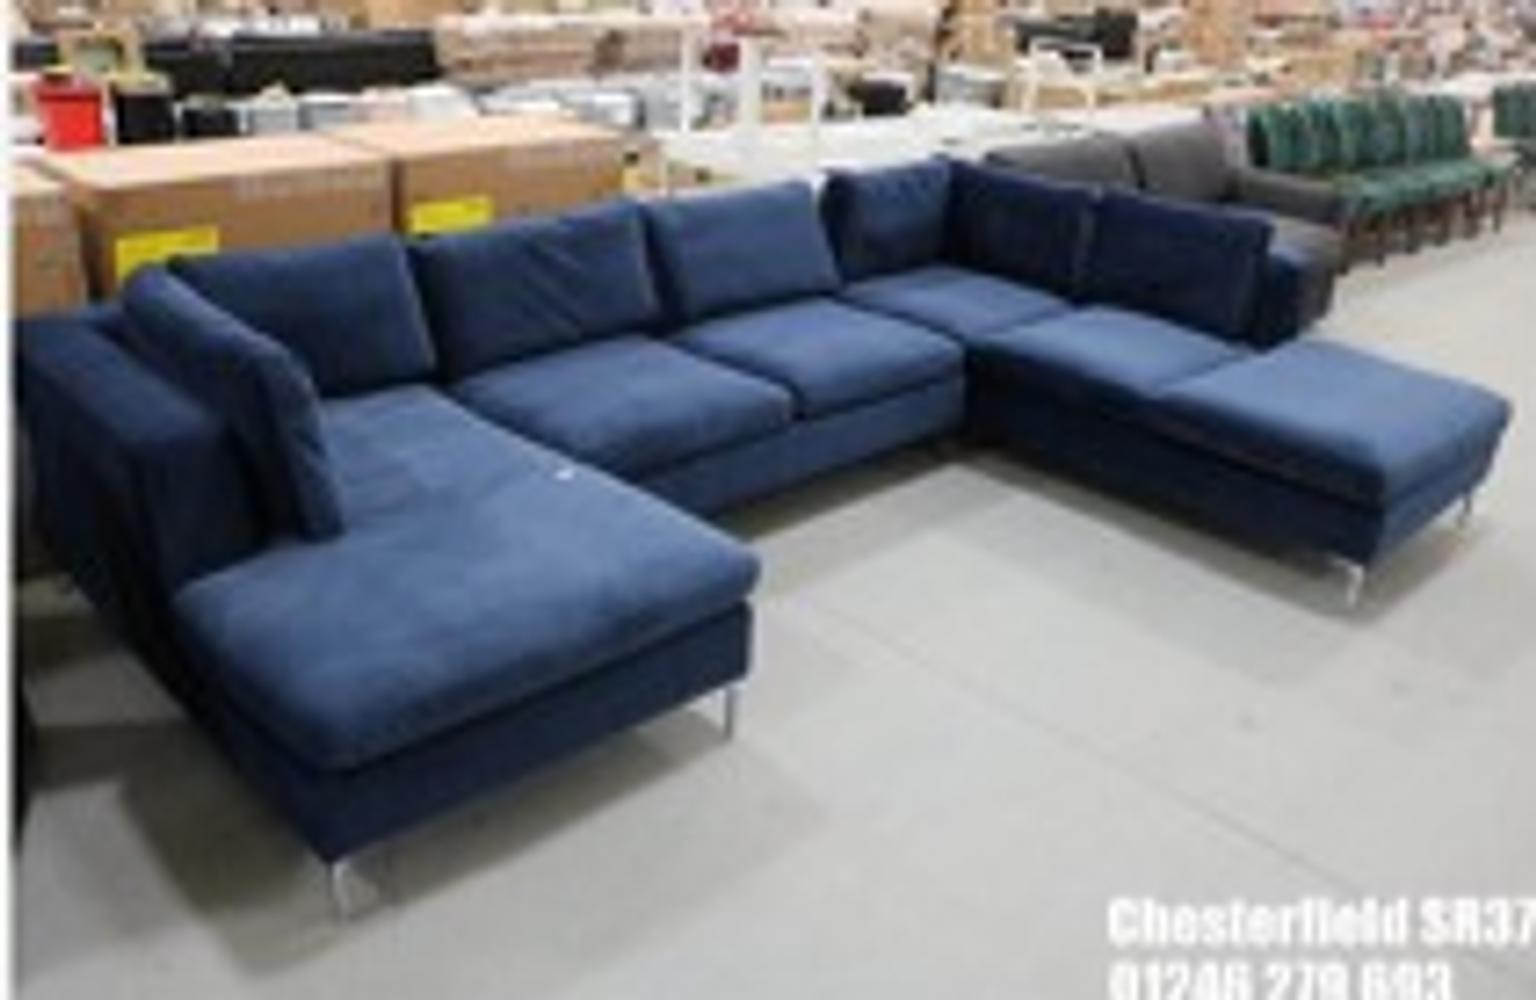 Large Monterosso Sofa In Ts1 Middlesbrough For 650 00 For Sale Shpock